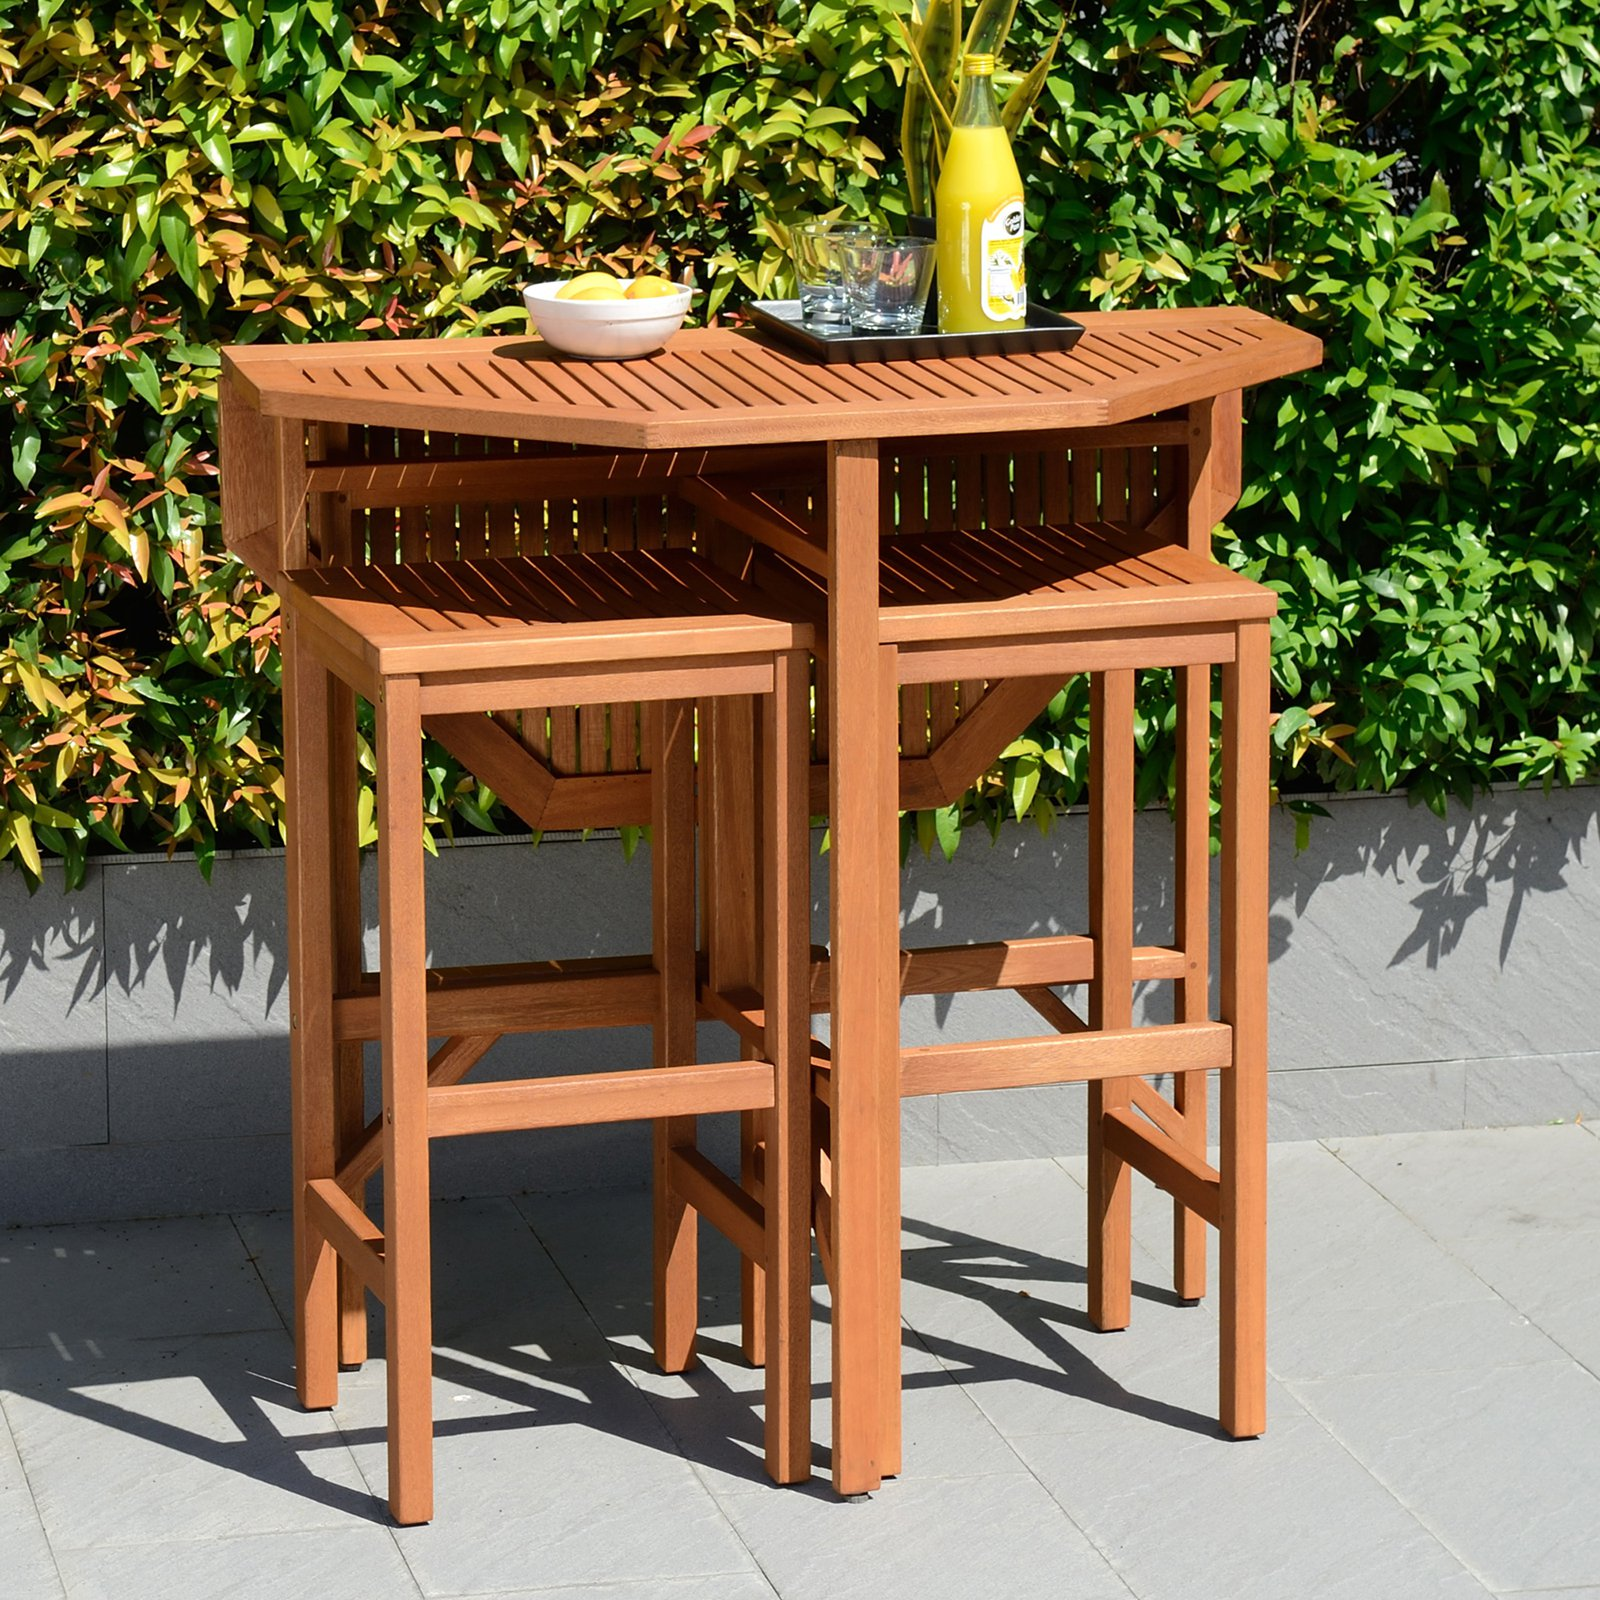 Southern Enterprises Trinidad Outdoor Patio Dining Table